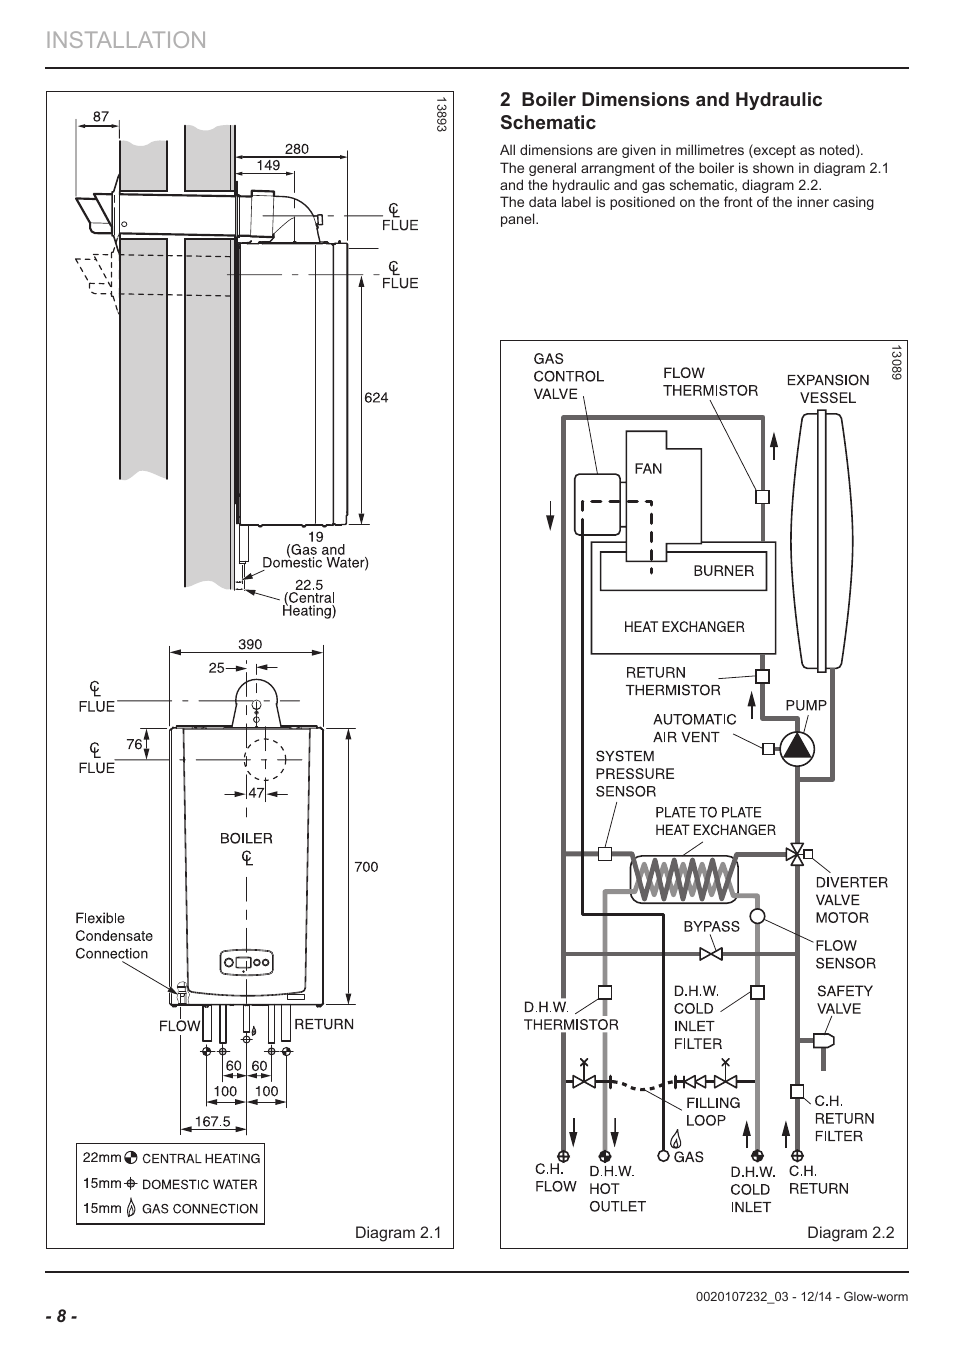 Installation, 2 boiler dimensions and hydraulic schematic | Glow ...